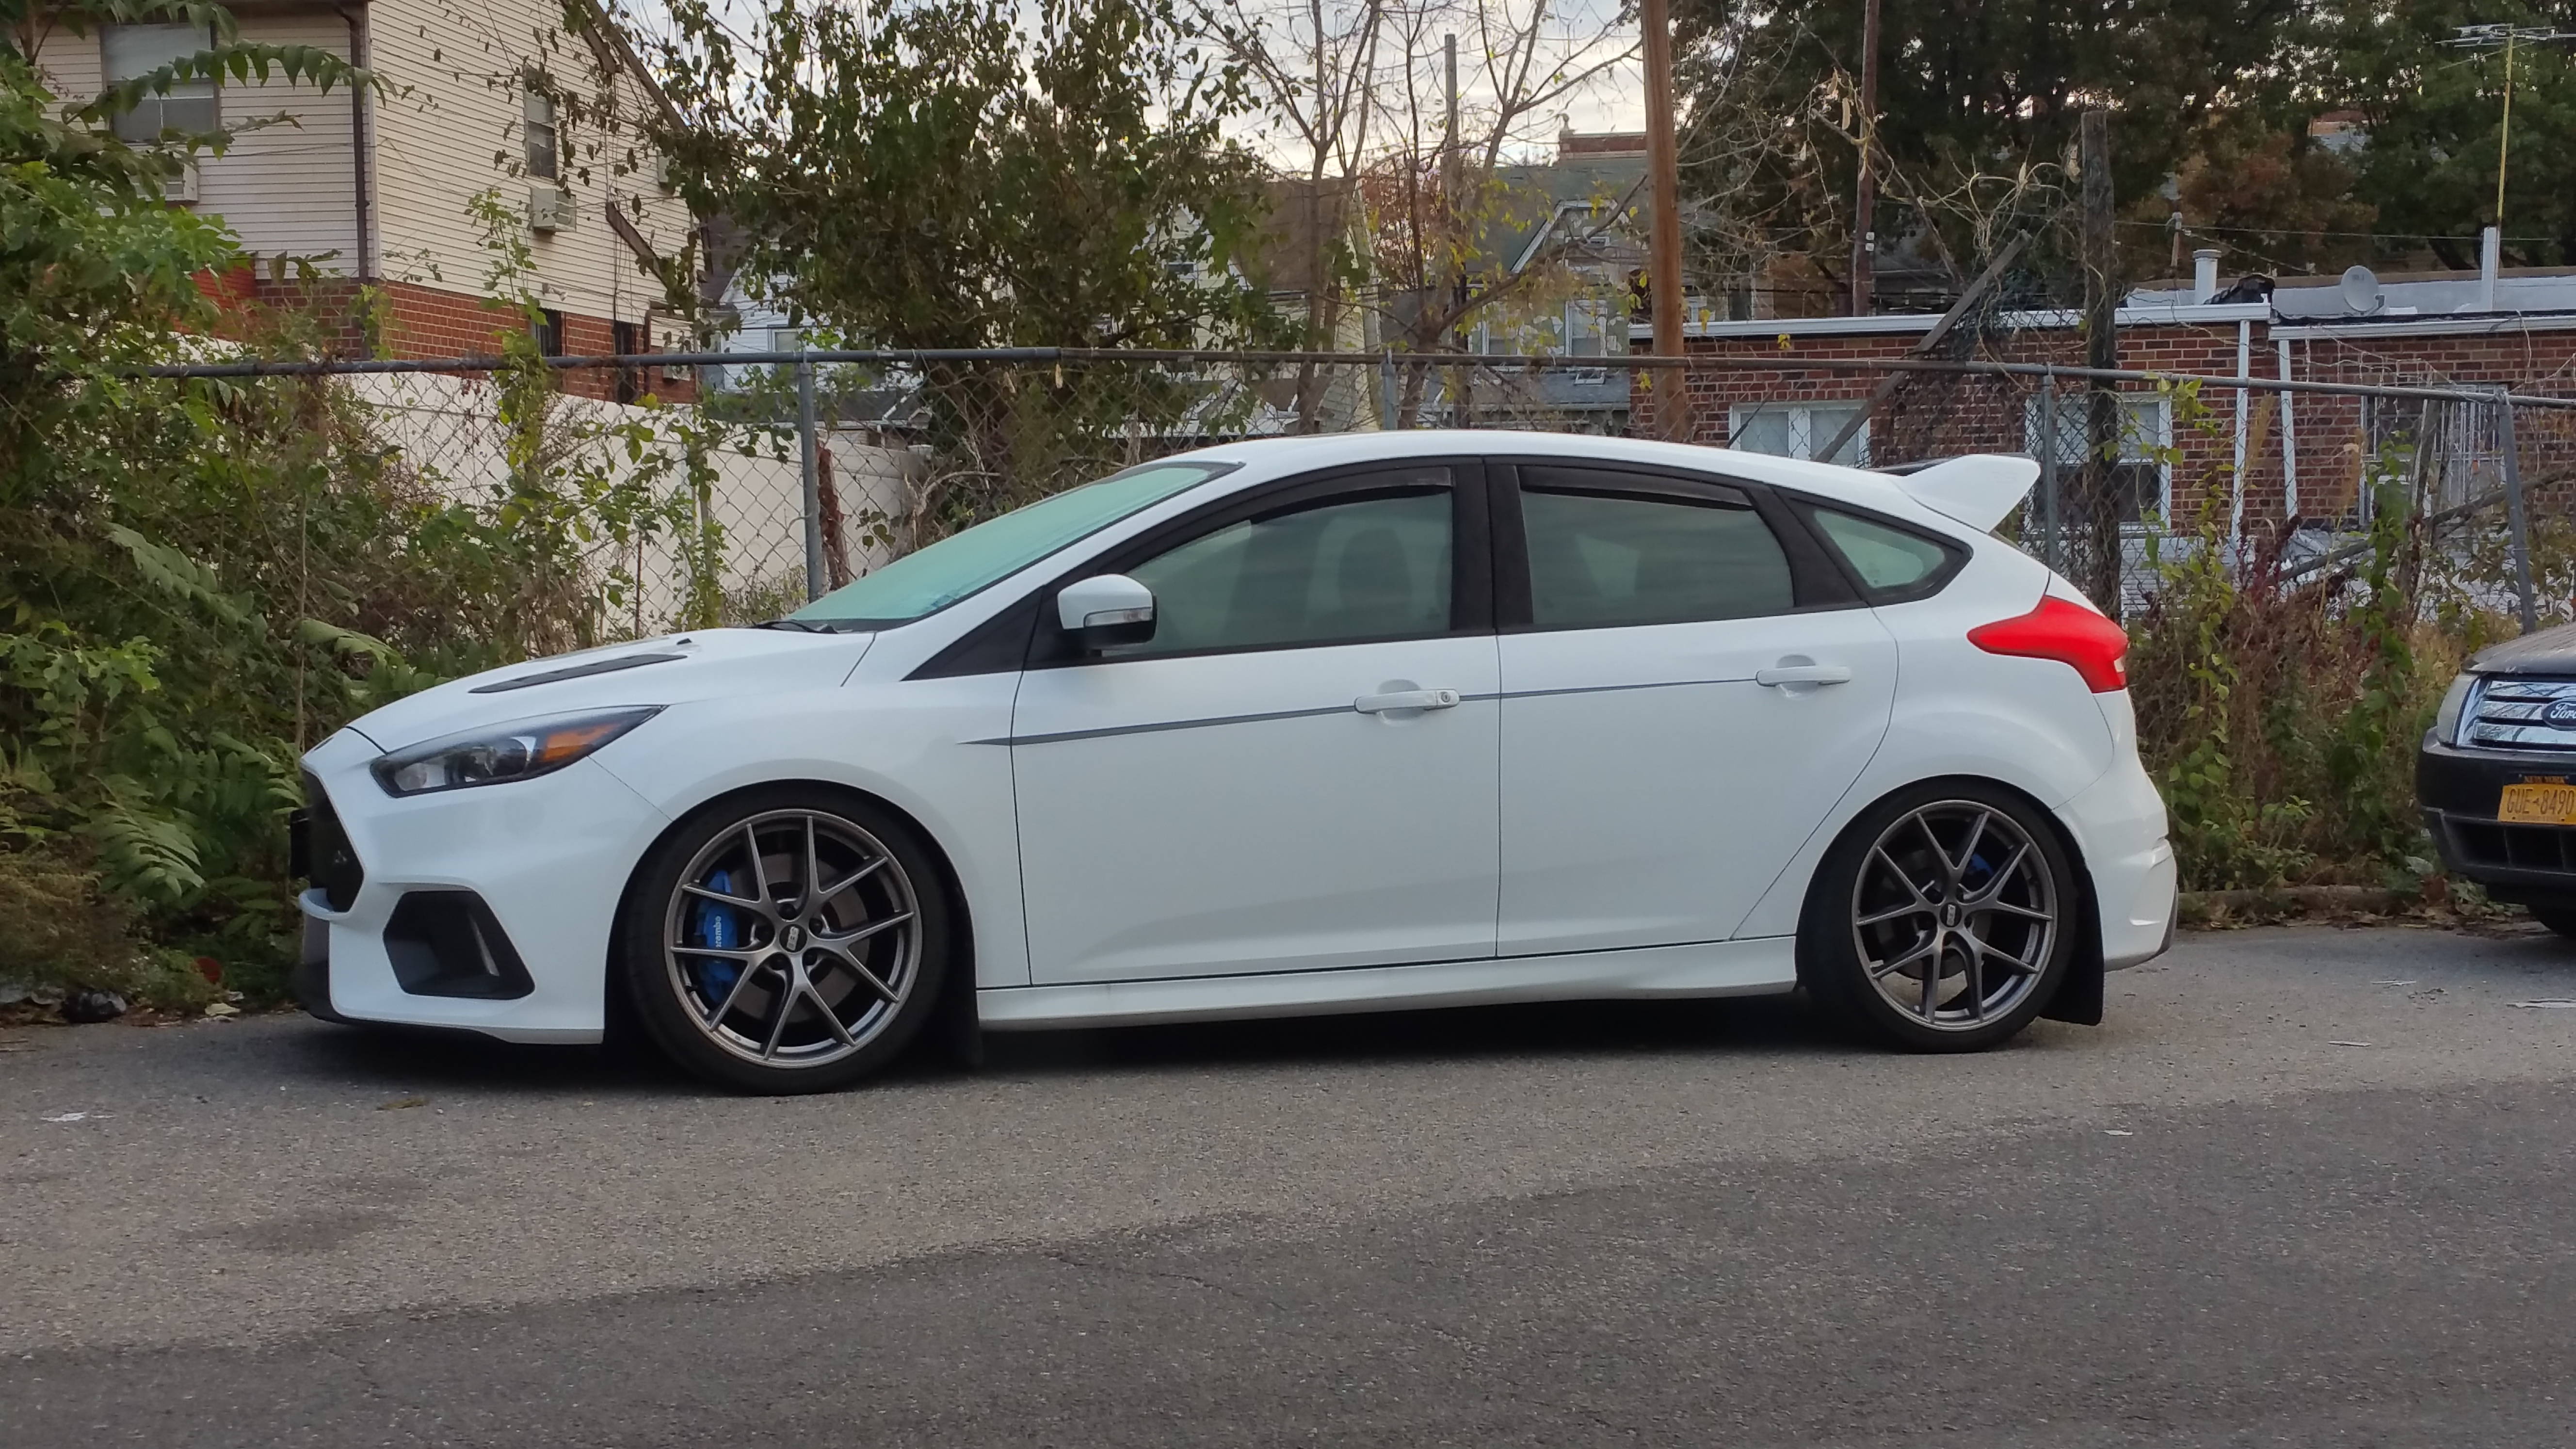 Focus St Wheels >> Post Pics of your Ford Focus RS wheel setup! - Page 6